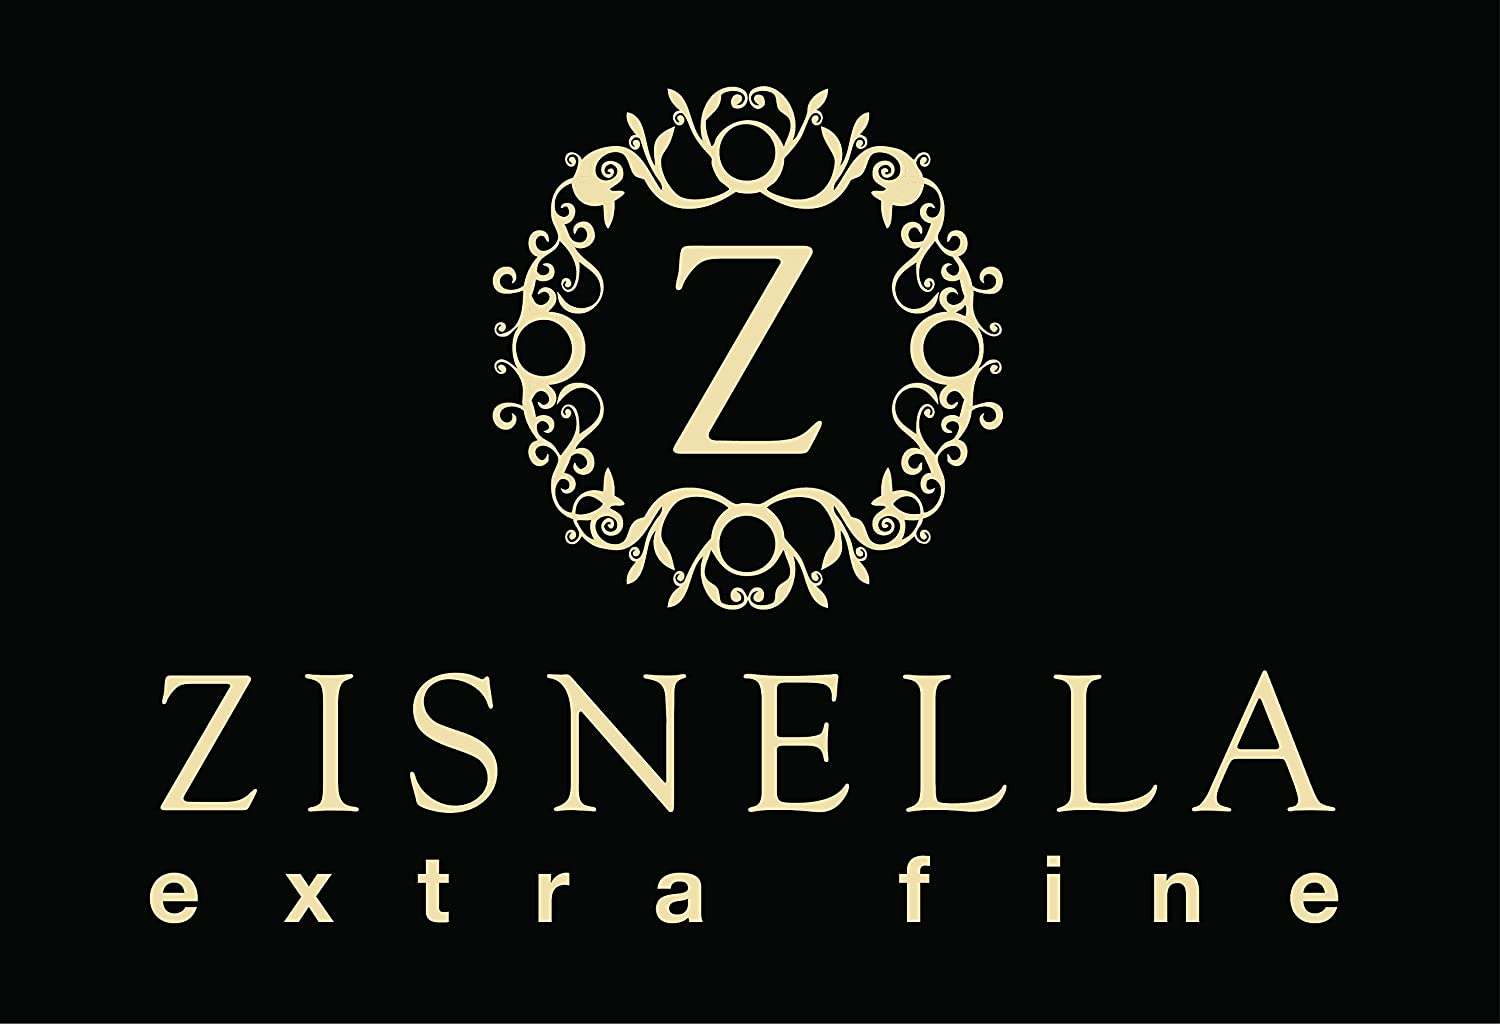 Amazon.com : Zisnella Extra Fine White Chocolate 31% Cacao 50g Multipack 12 : Grocery & Gourmet Food